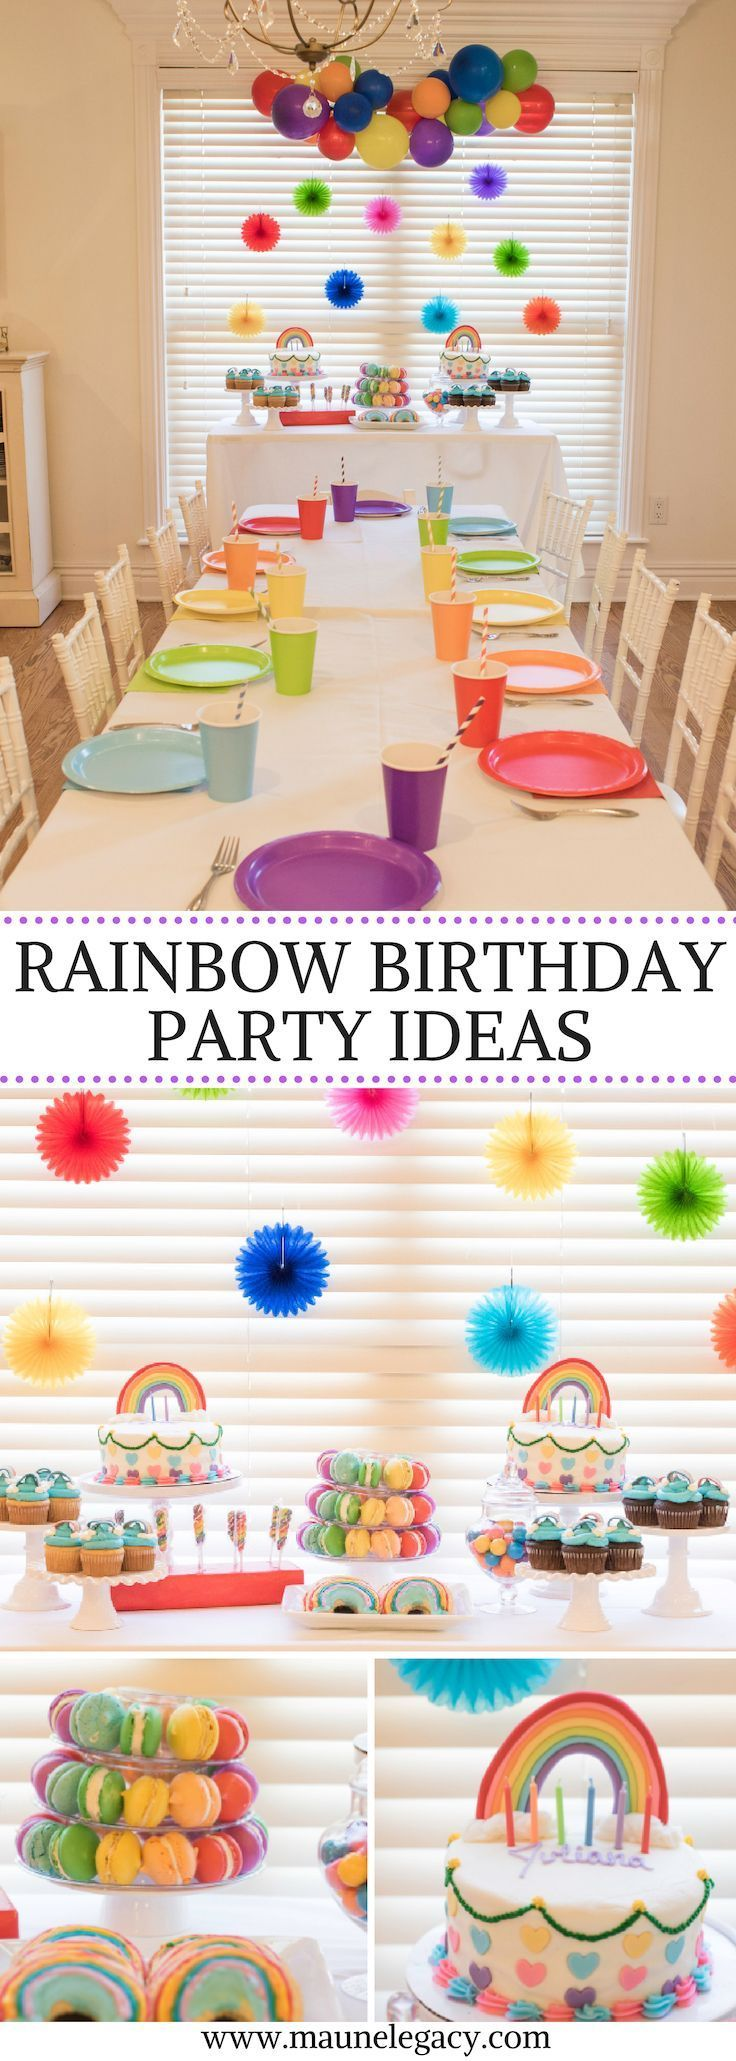 Colorful Rainbow Party Ideas